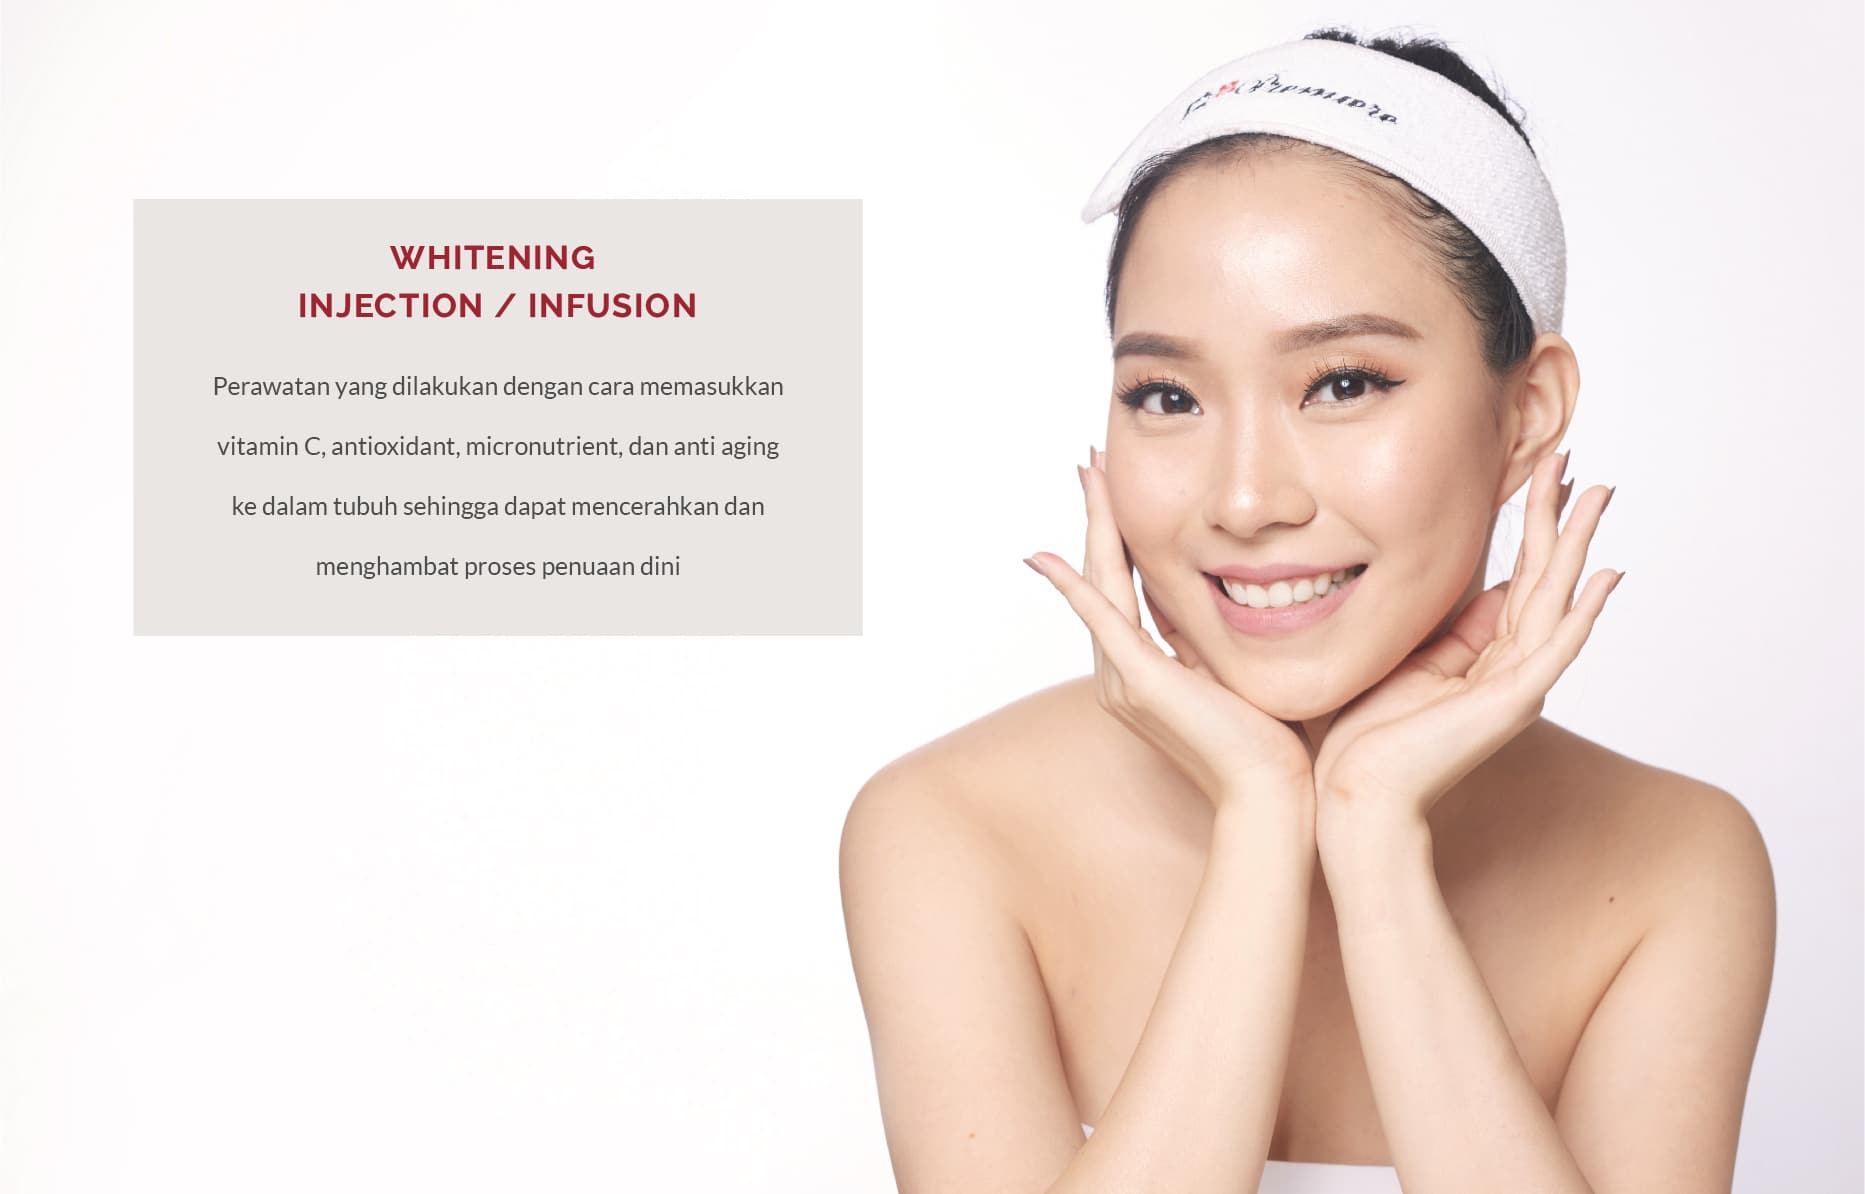 whitening injection infusion